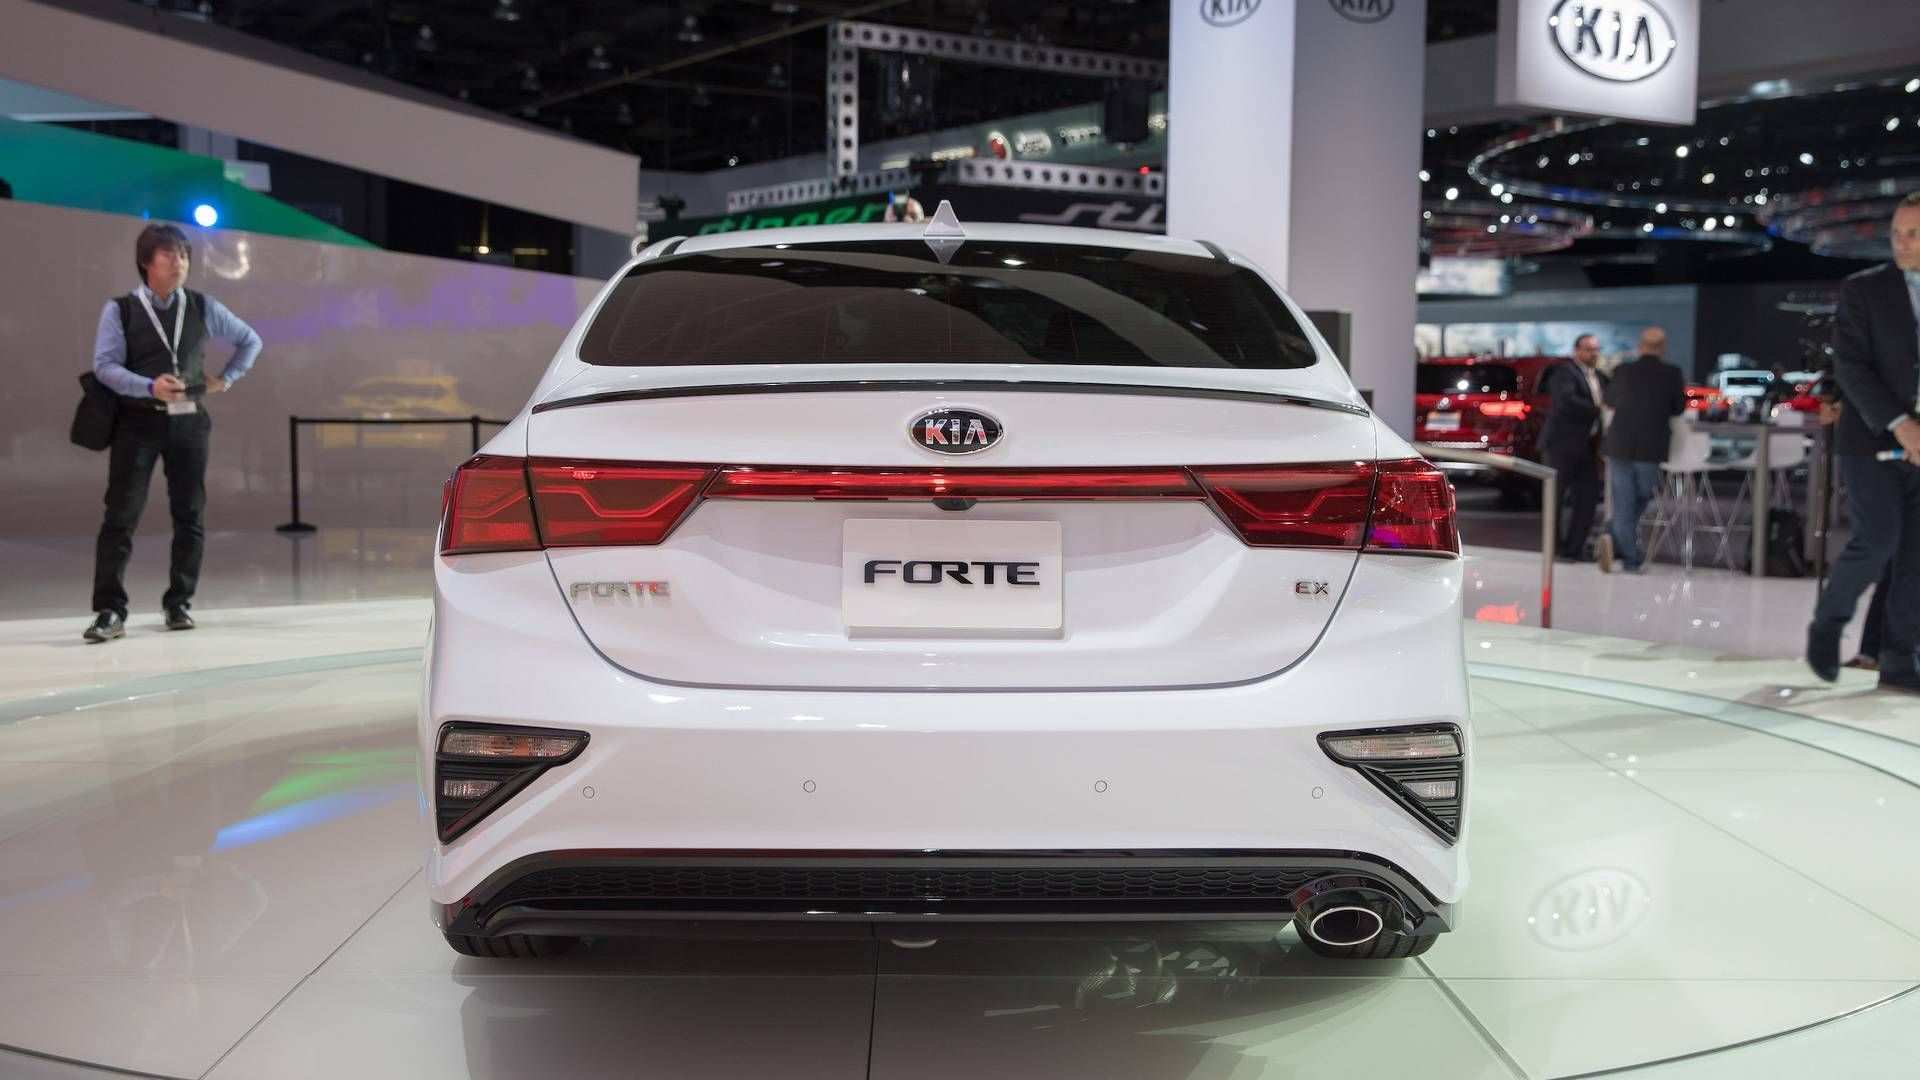 78 Best Review Kia Forte 2020 Colors Photos by Kia Forte 2020 Colors